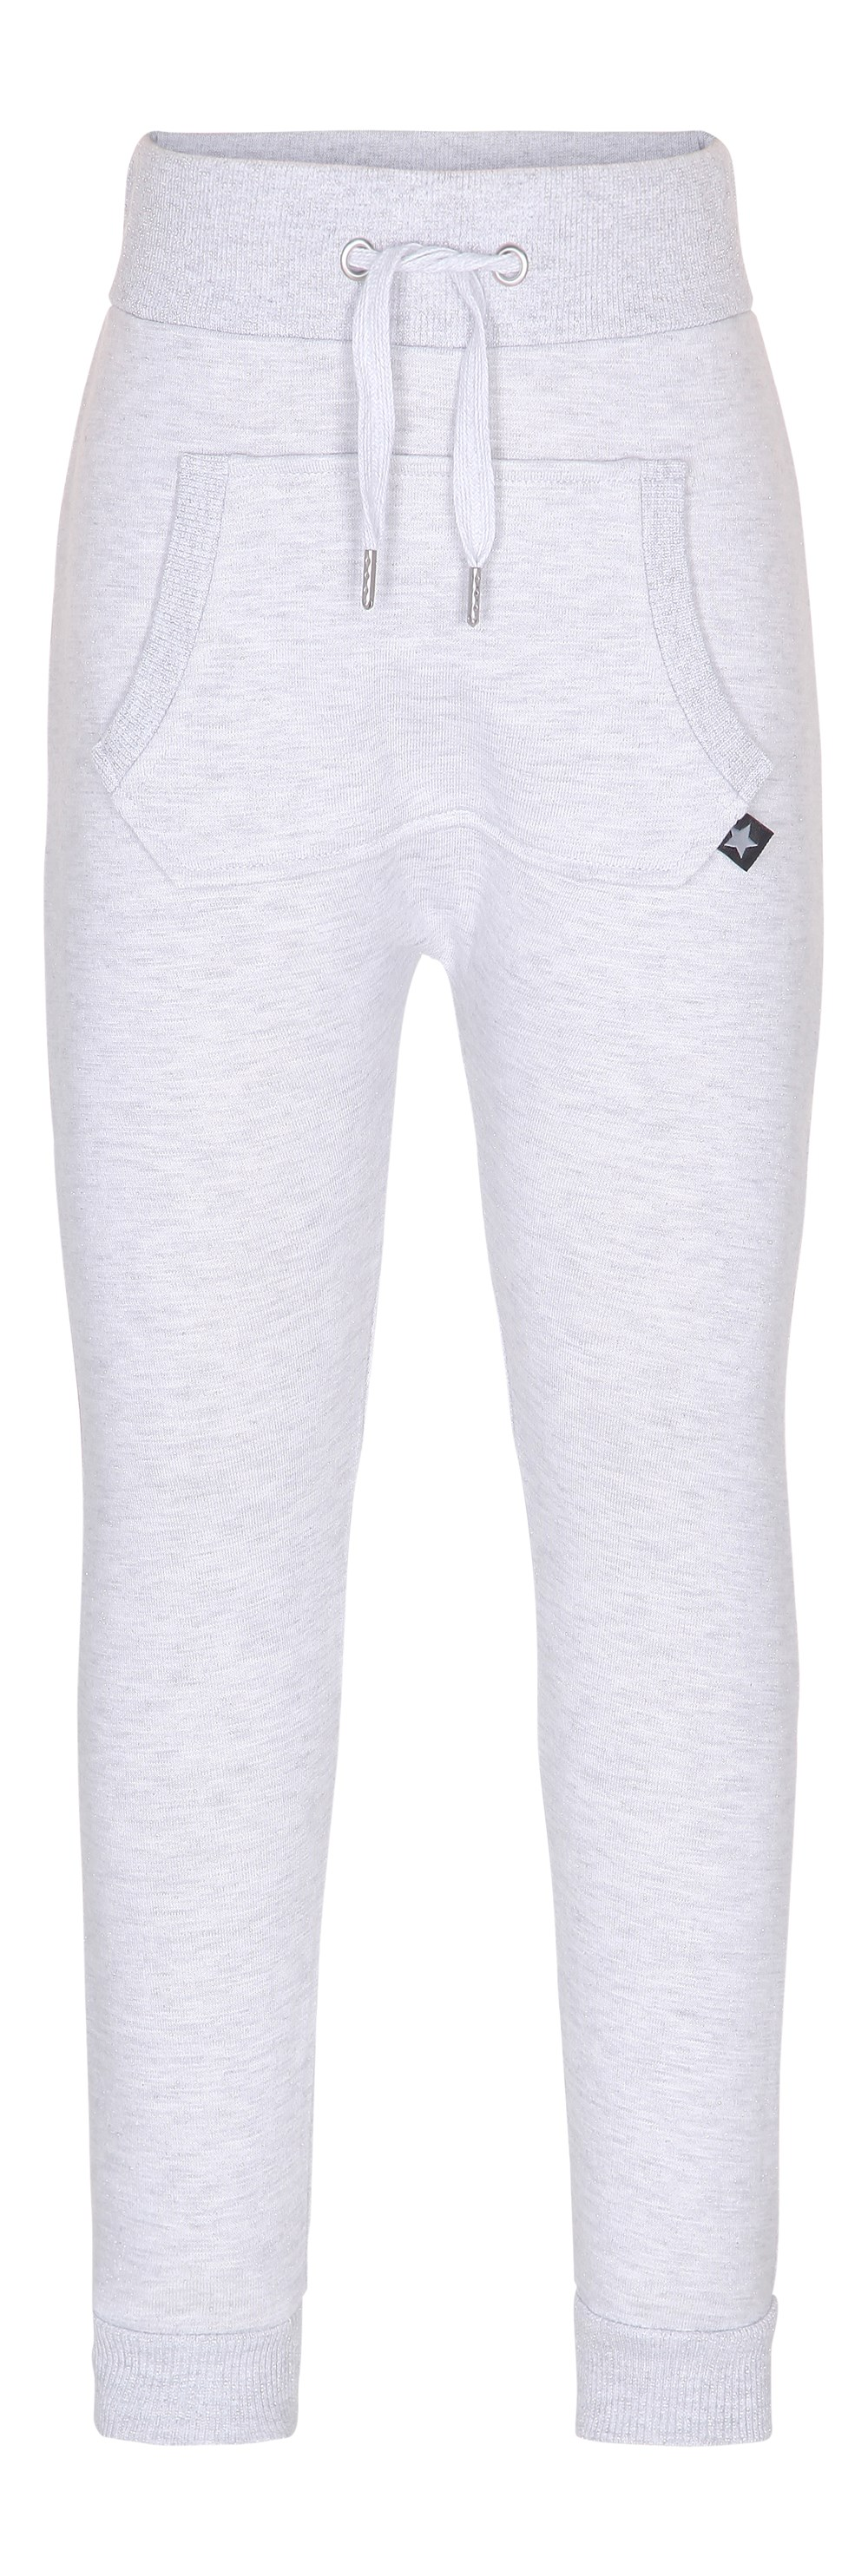 Aliki - Snow Melange - lysegrå sweatpants